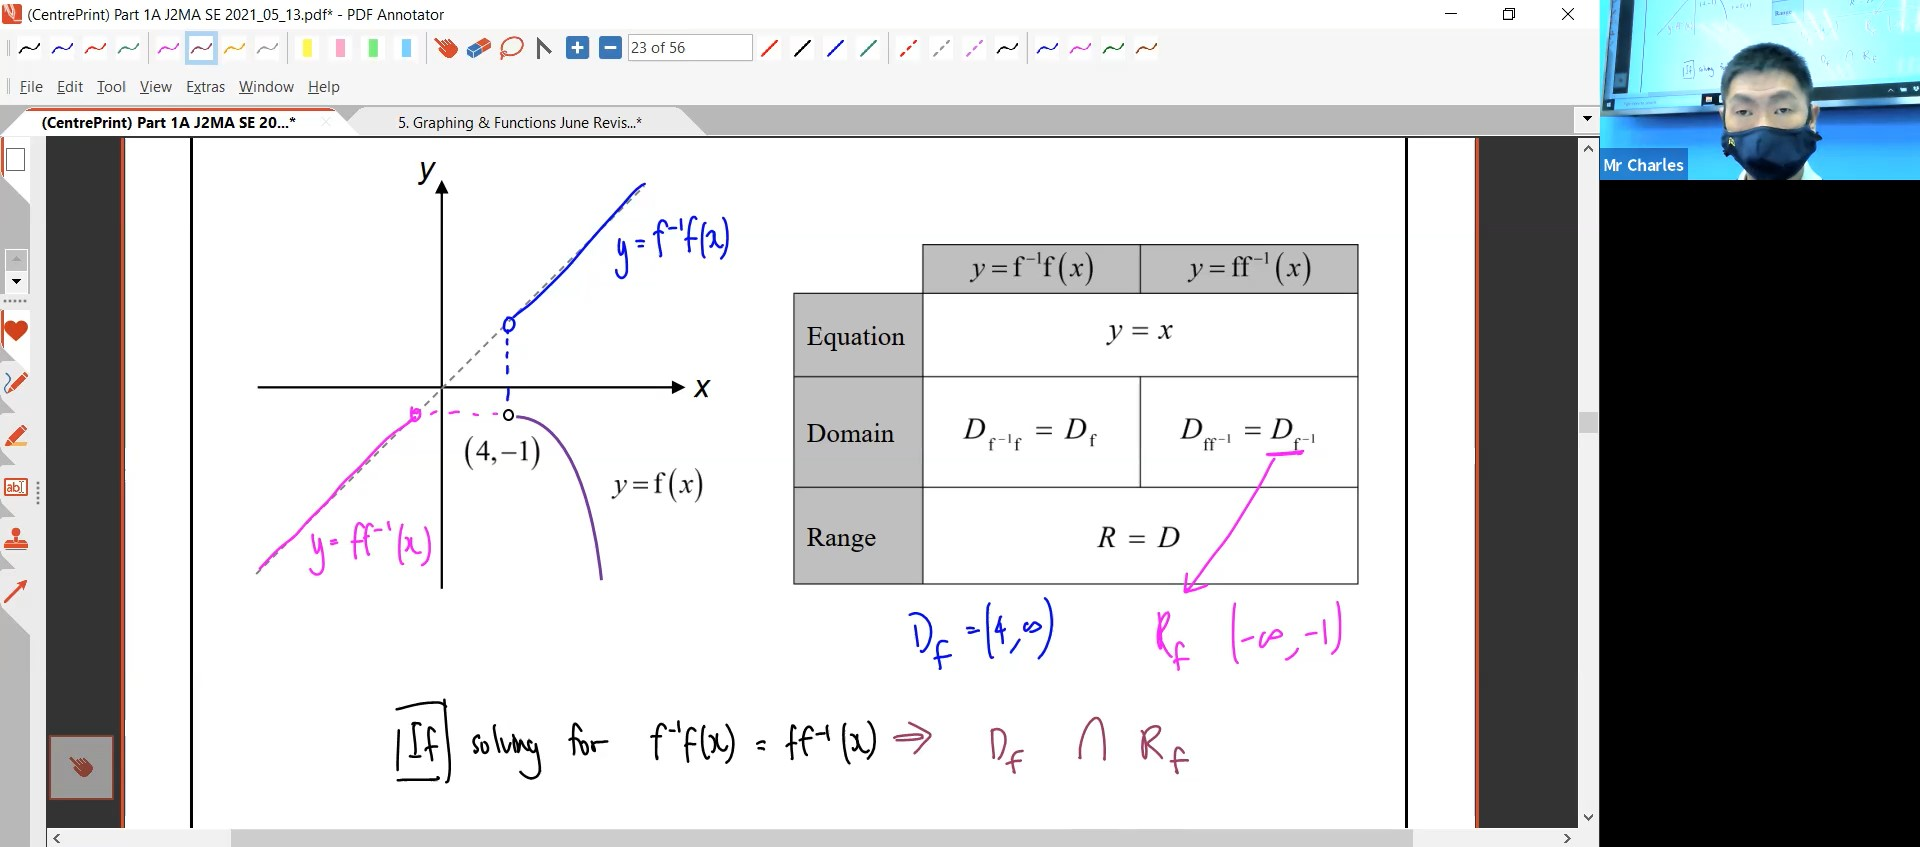 30. Graphing & Functions Revision L2